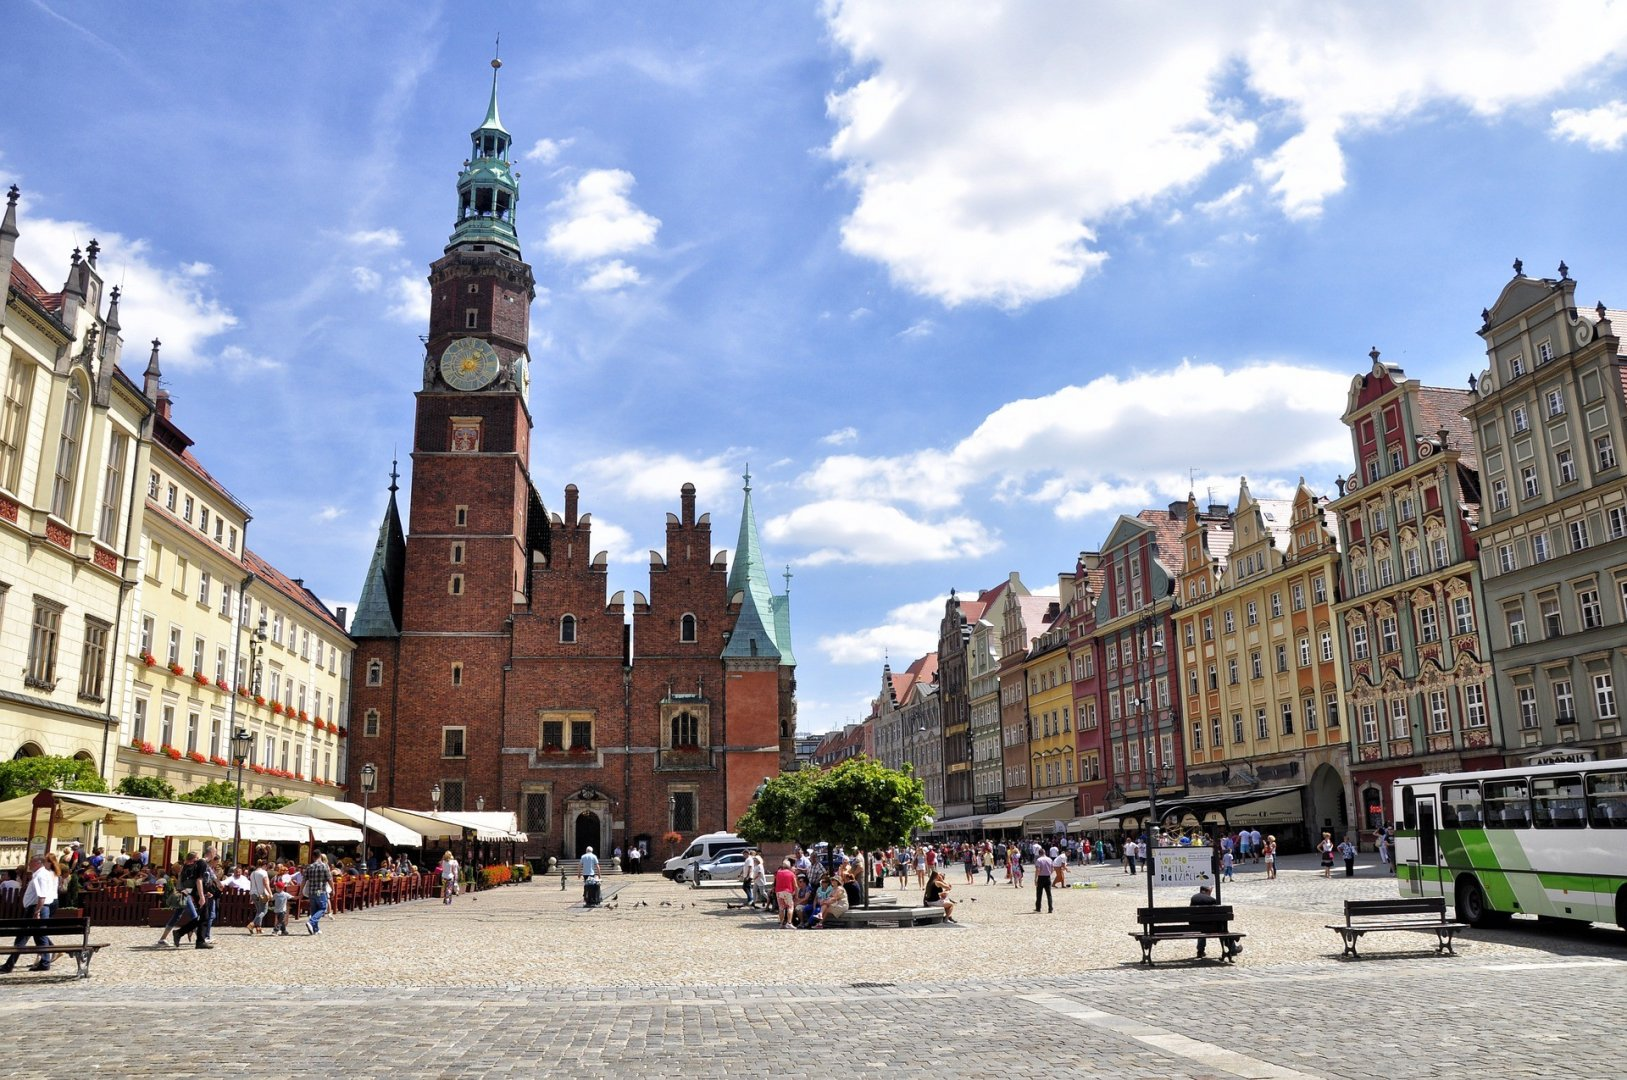 Wroclaw – a magical city of bridges and meetings